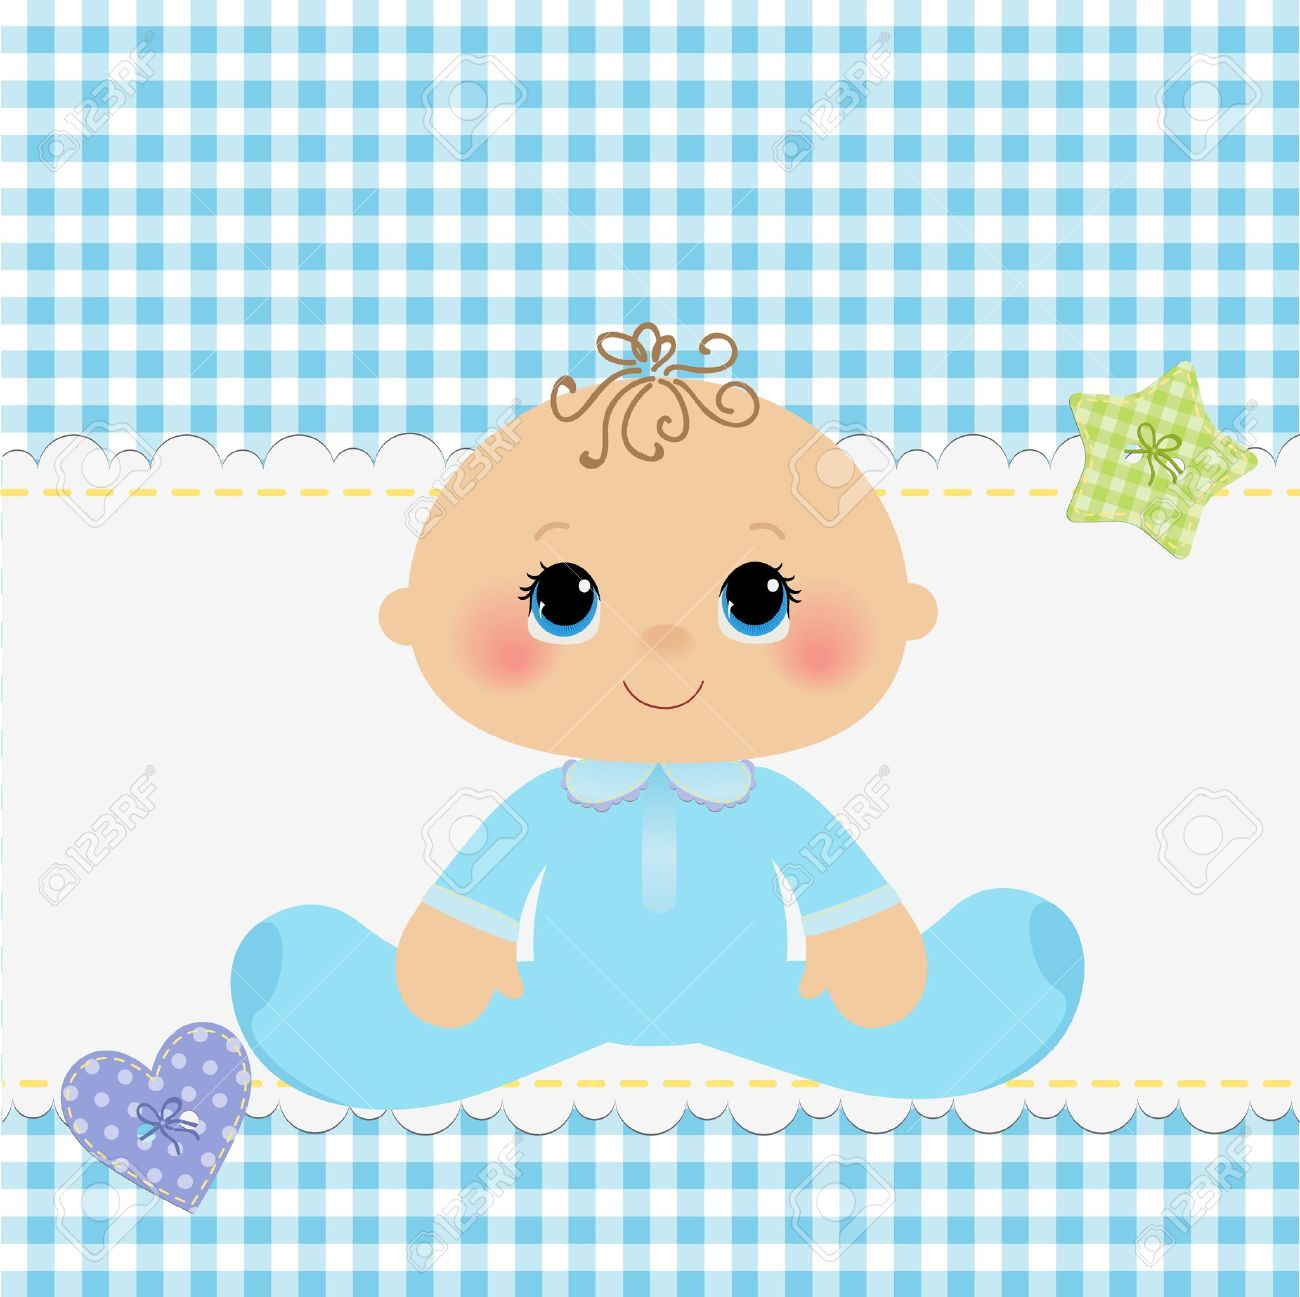 Cute template for baby arrival announcement card - 15028324